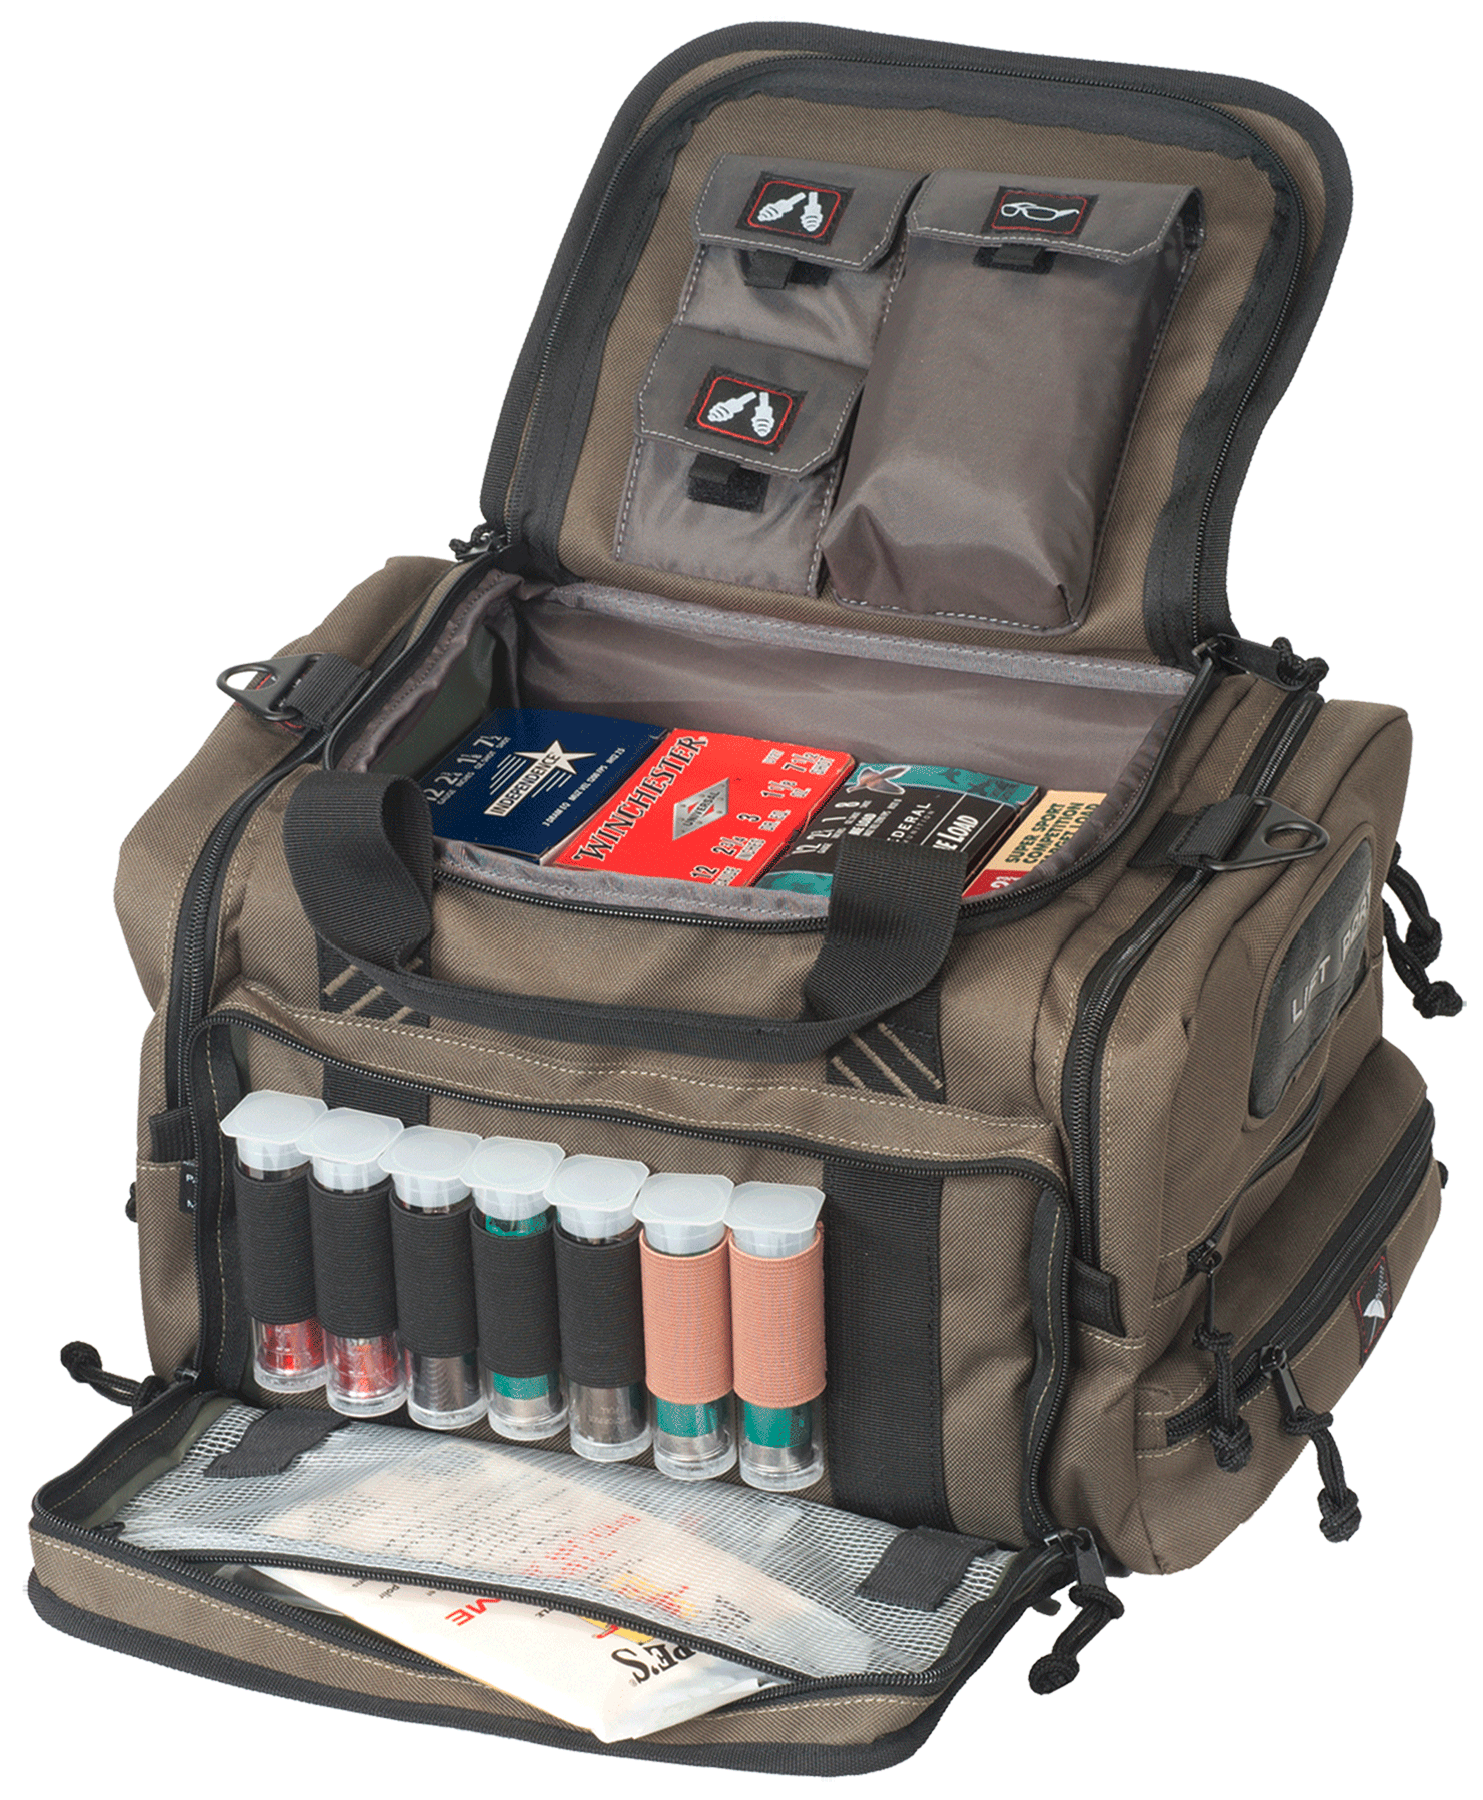 G*Outdoors 1411SC Sporting Clays Range Bag w/Waterproof Cover Nylon Green